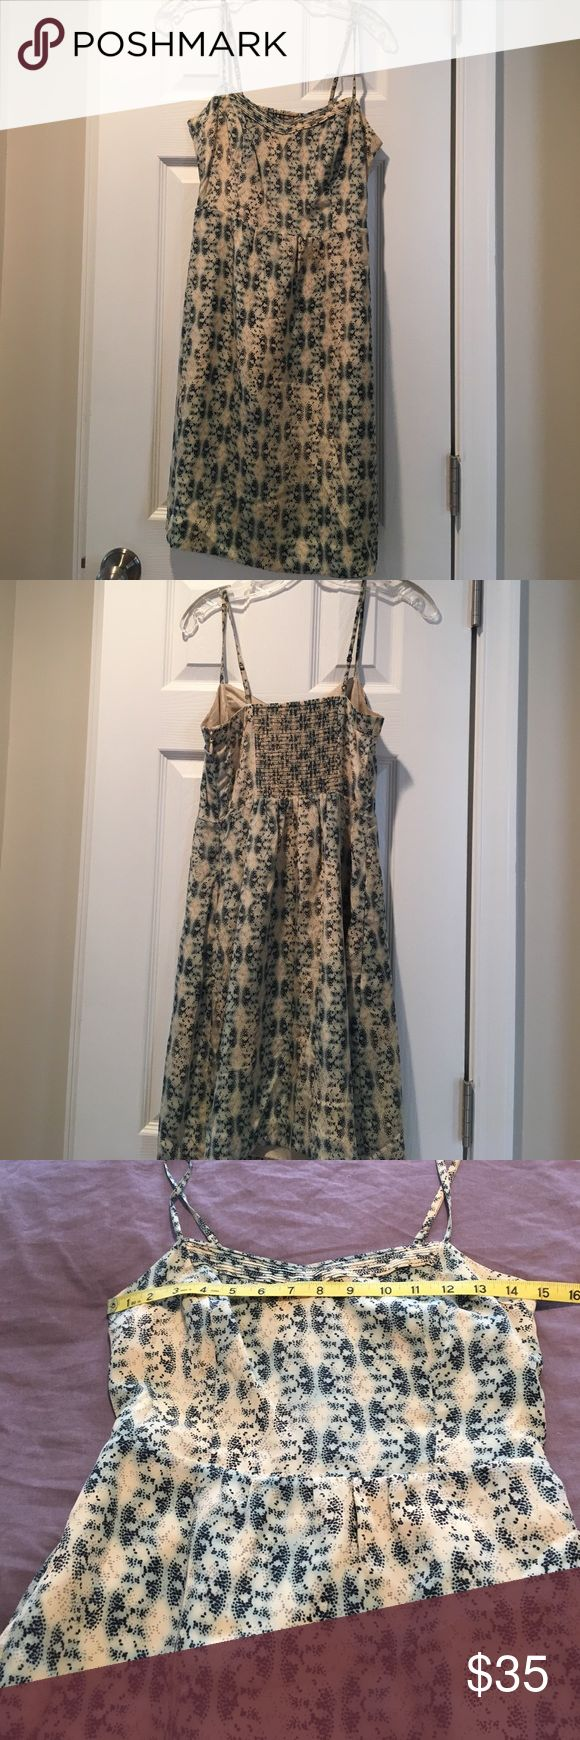 Anthropologie Moulinette Soers size 2 silk sheath Beautiful ivory and blue patterned 100% silk fully lined dress. Adjustable spaghetti straps with a hidden side zipper.  Perfect for the office or a wedding.  This can be dressed up or down.  Make me a reasonable offer. Anthropologie Dresses Midi